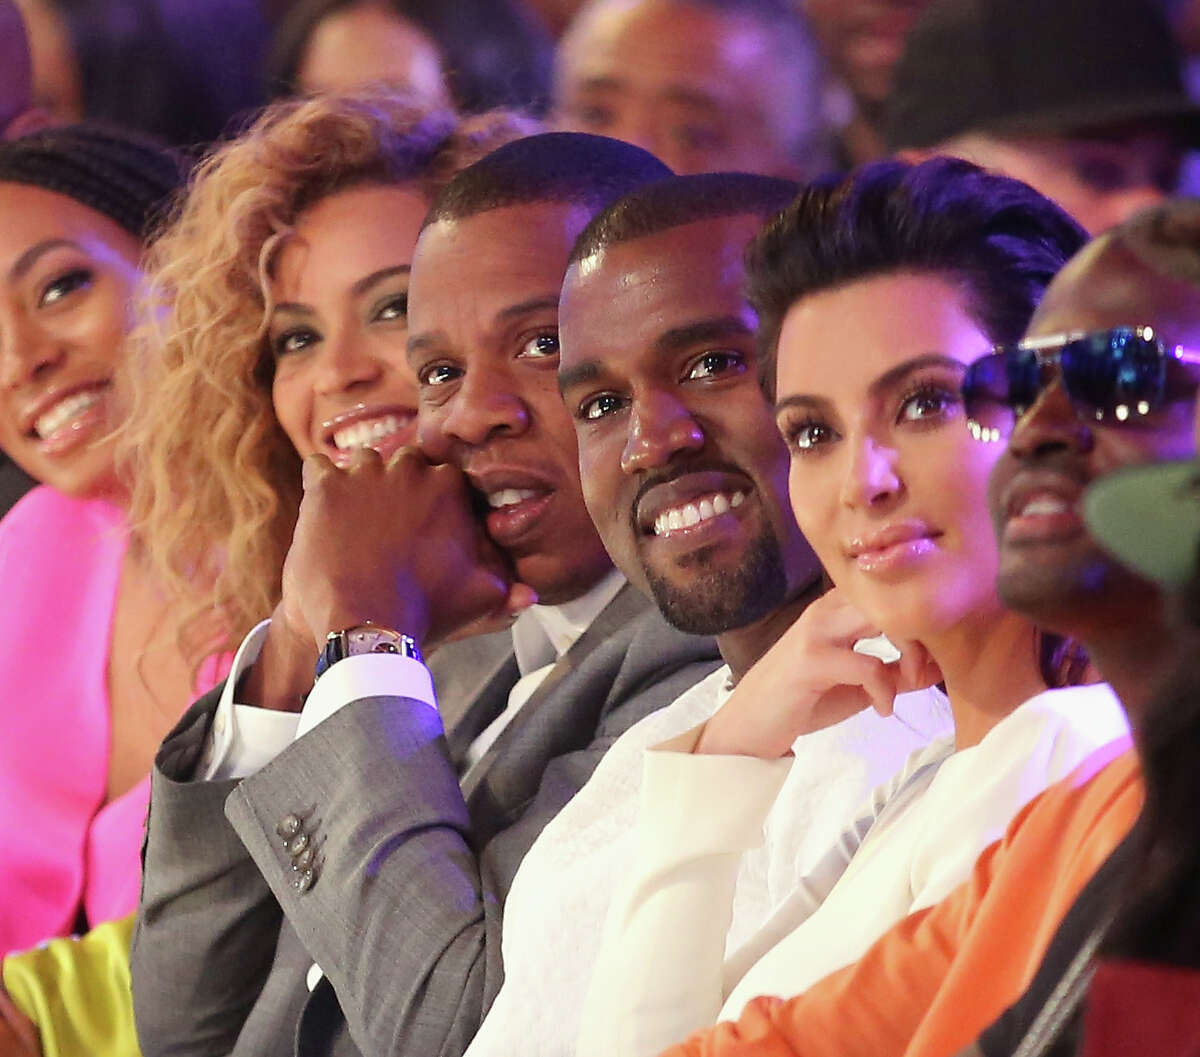 LOS ANGELES, CA - JULY 01: (L-R) Singer Beyonce, rappers Jay-Z and Kanye West and television personality Kim Kardashian attend the 2012 BET Awards at The Shrine Auditorium on July 1, 2012 in Los Angeles, California.